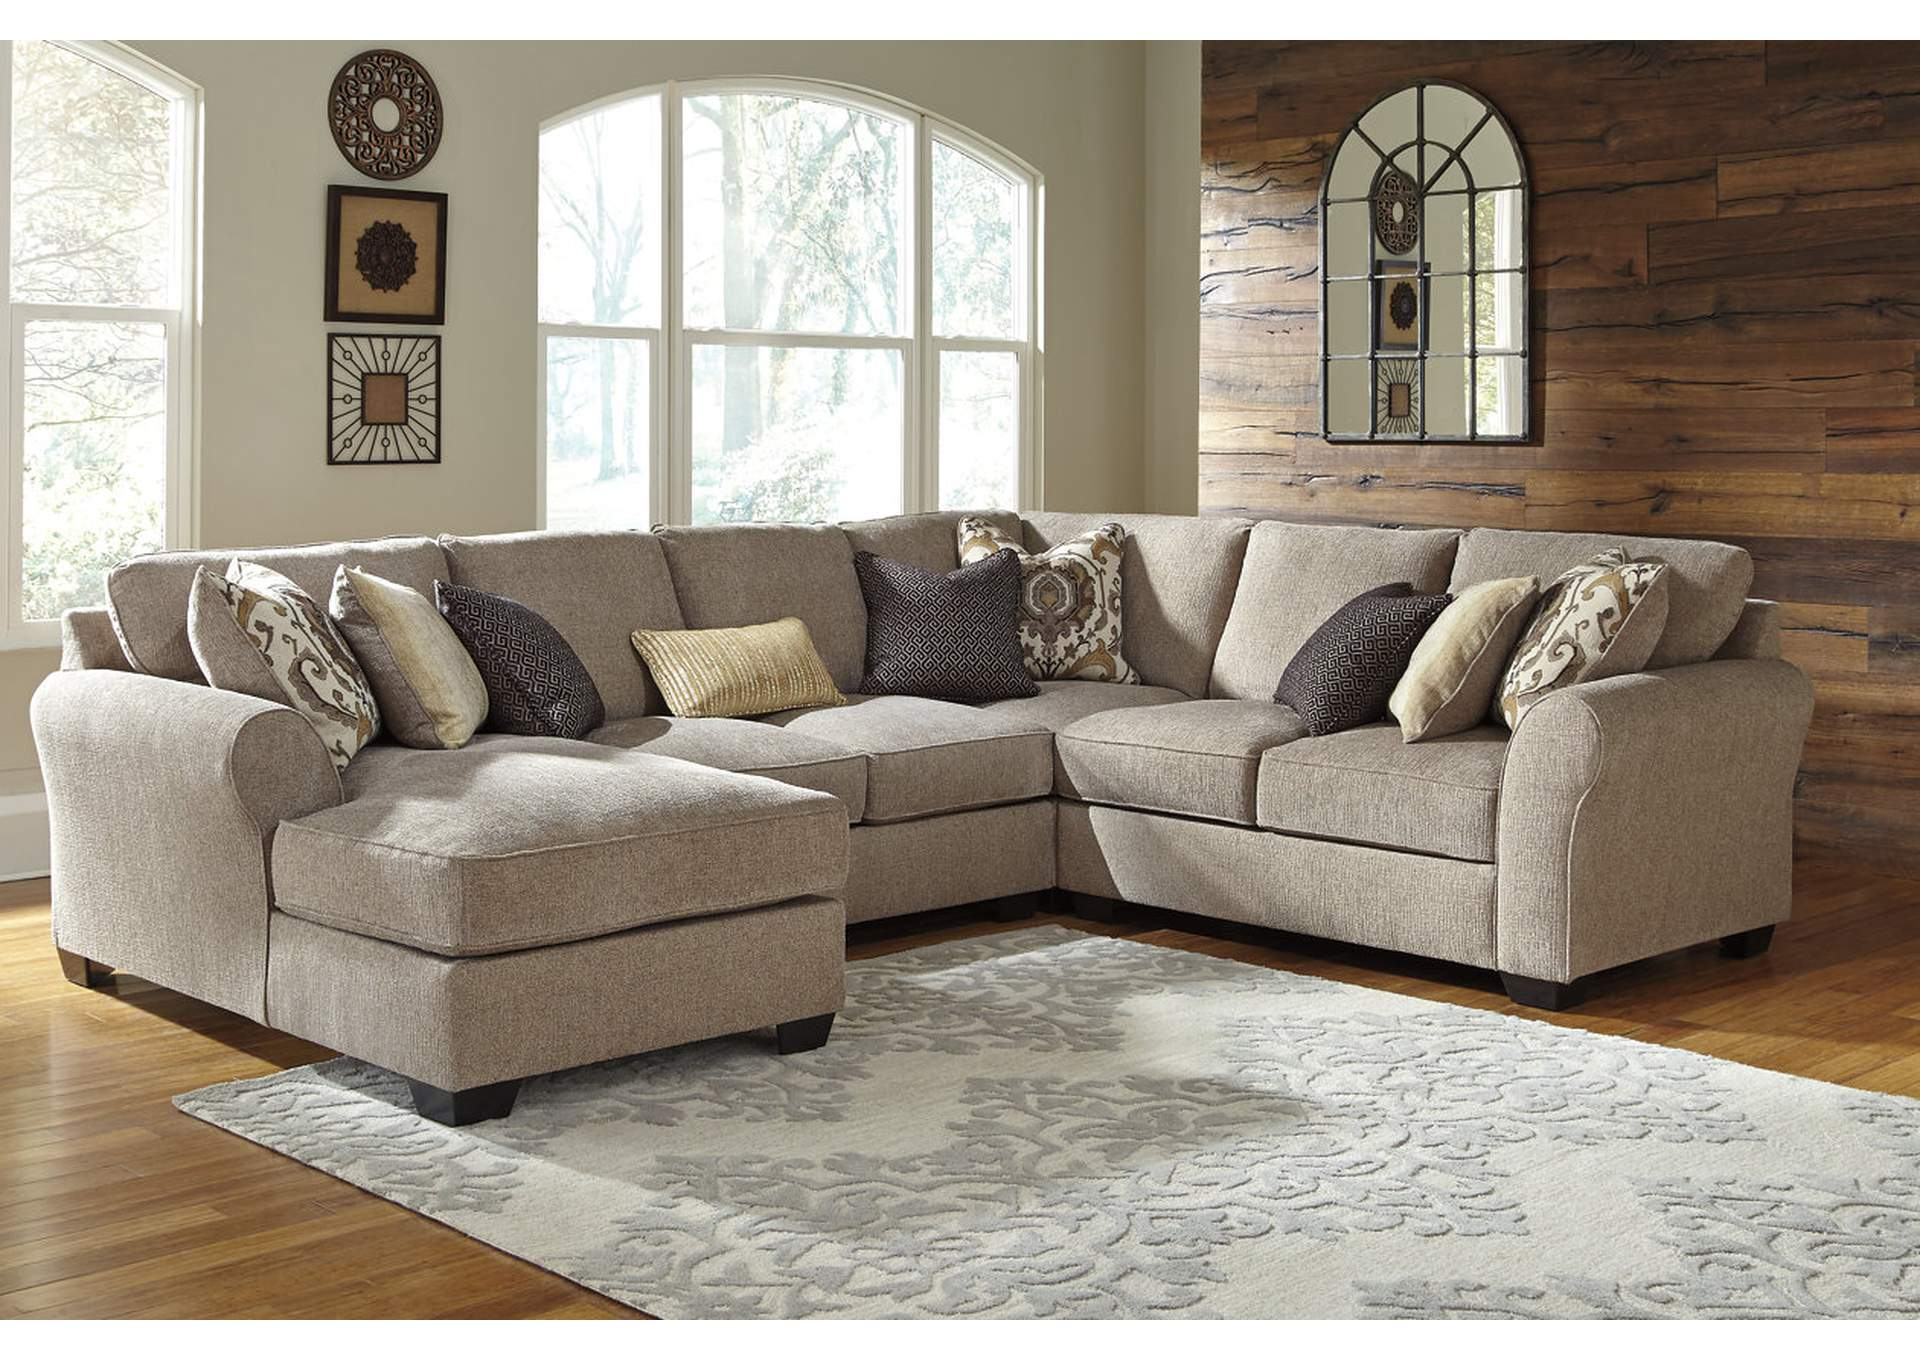 Pantomine Driftwood LAF Chaise Sectional,Benchcraft